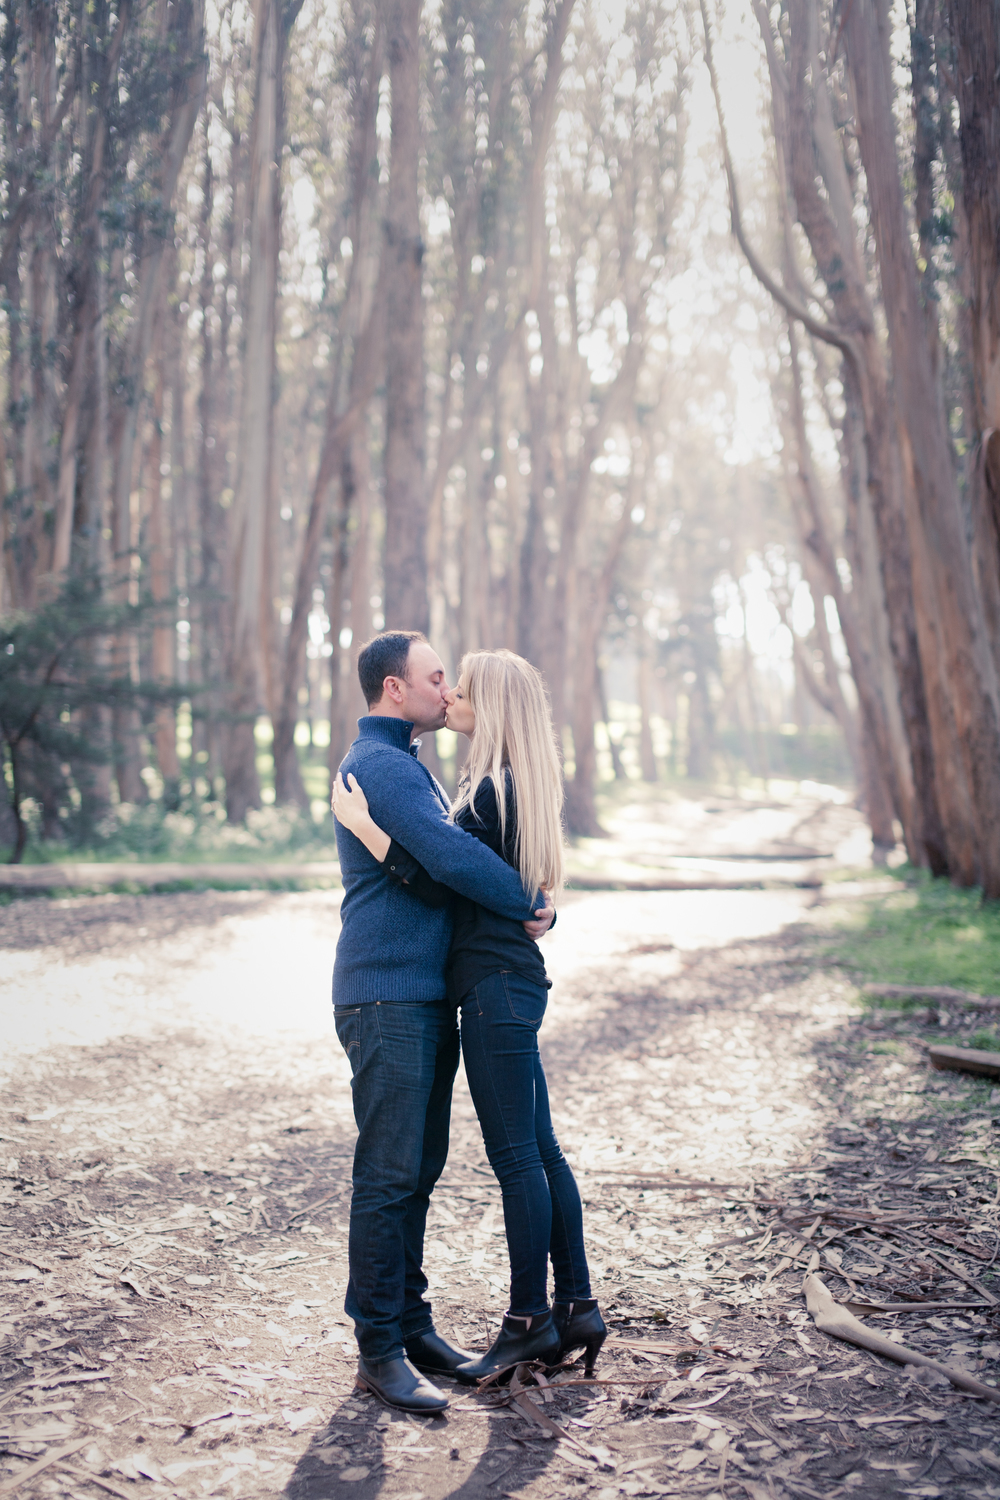 Annie & Anthony - Engaged (188 of 200).jpg